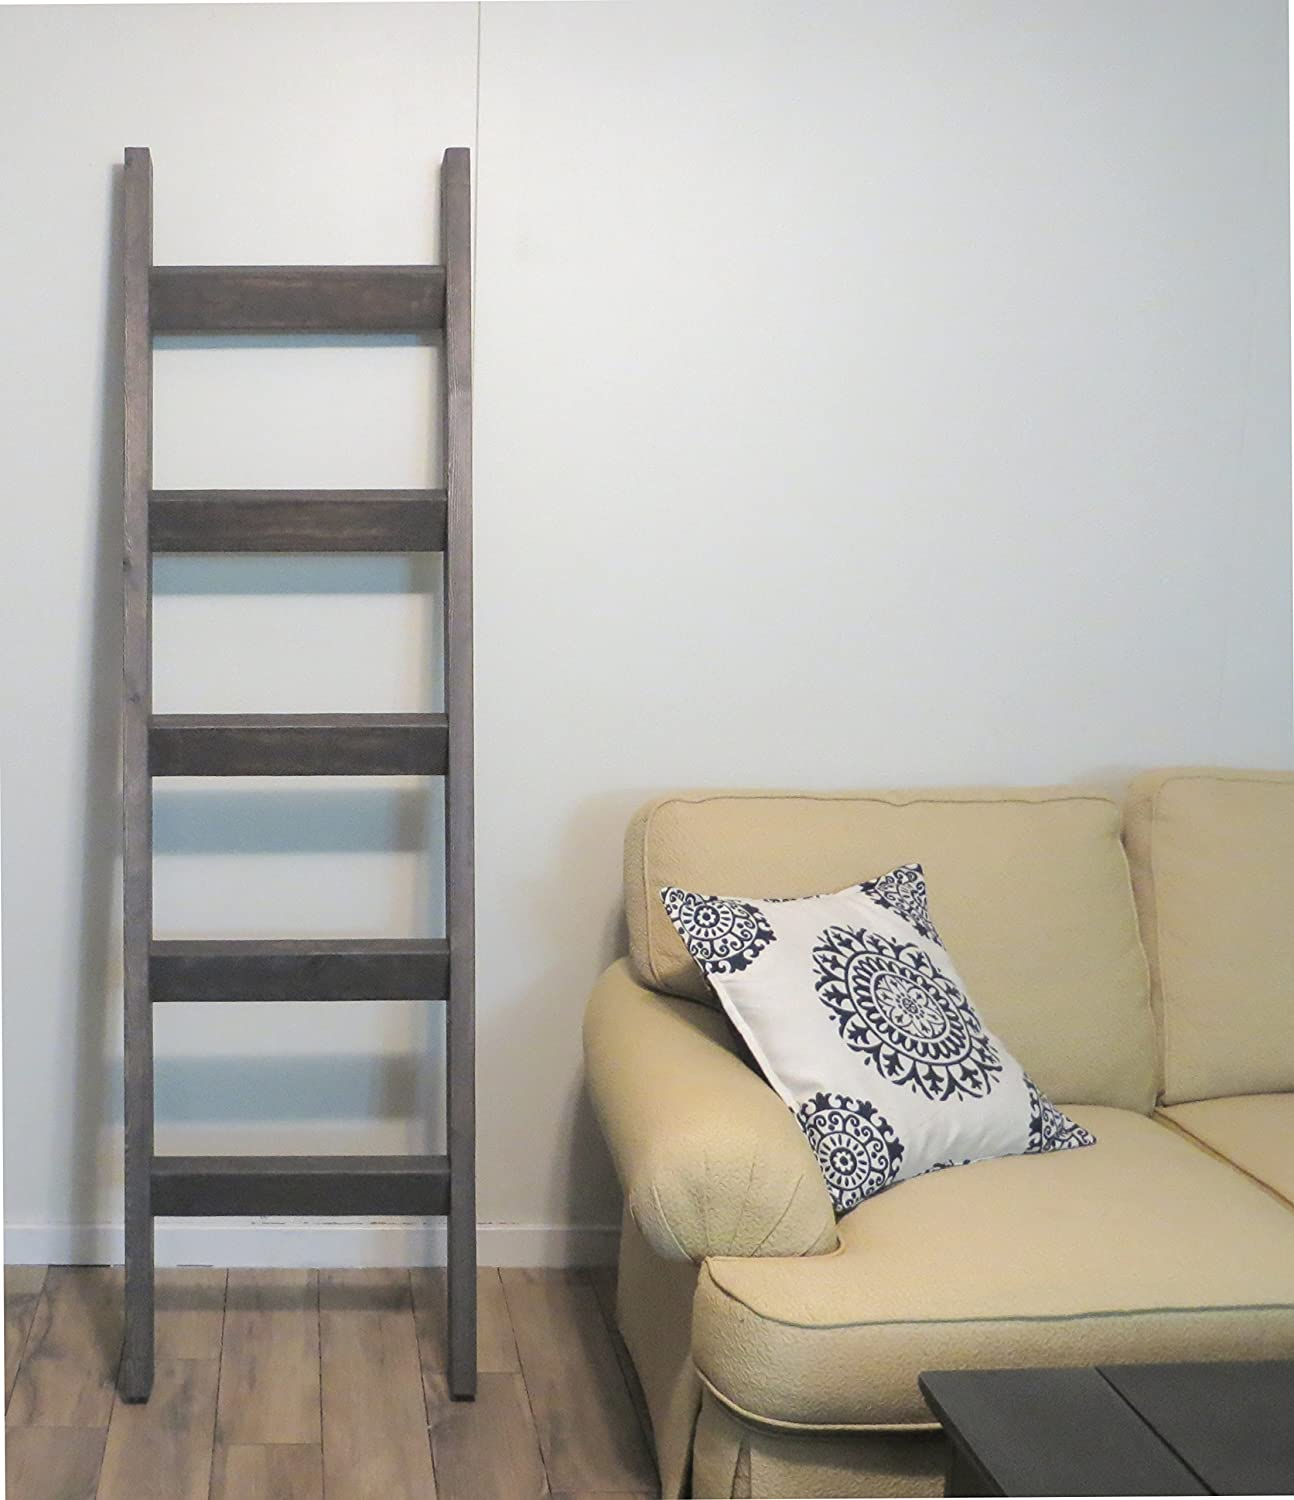 Amazon.com: 6 ft Blanket Ladder, Decorative Wooden Ladder, Quilt ...